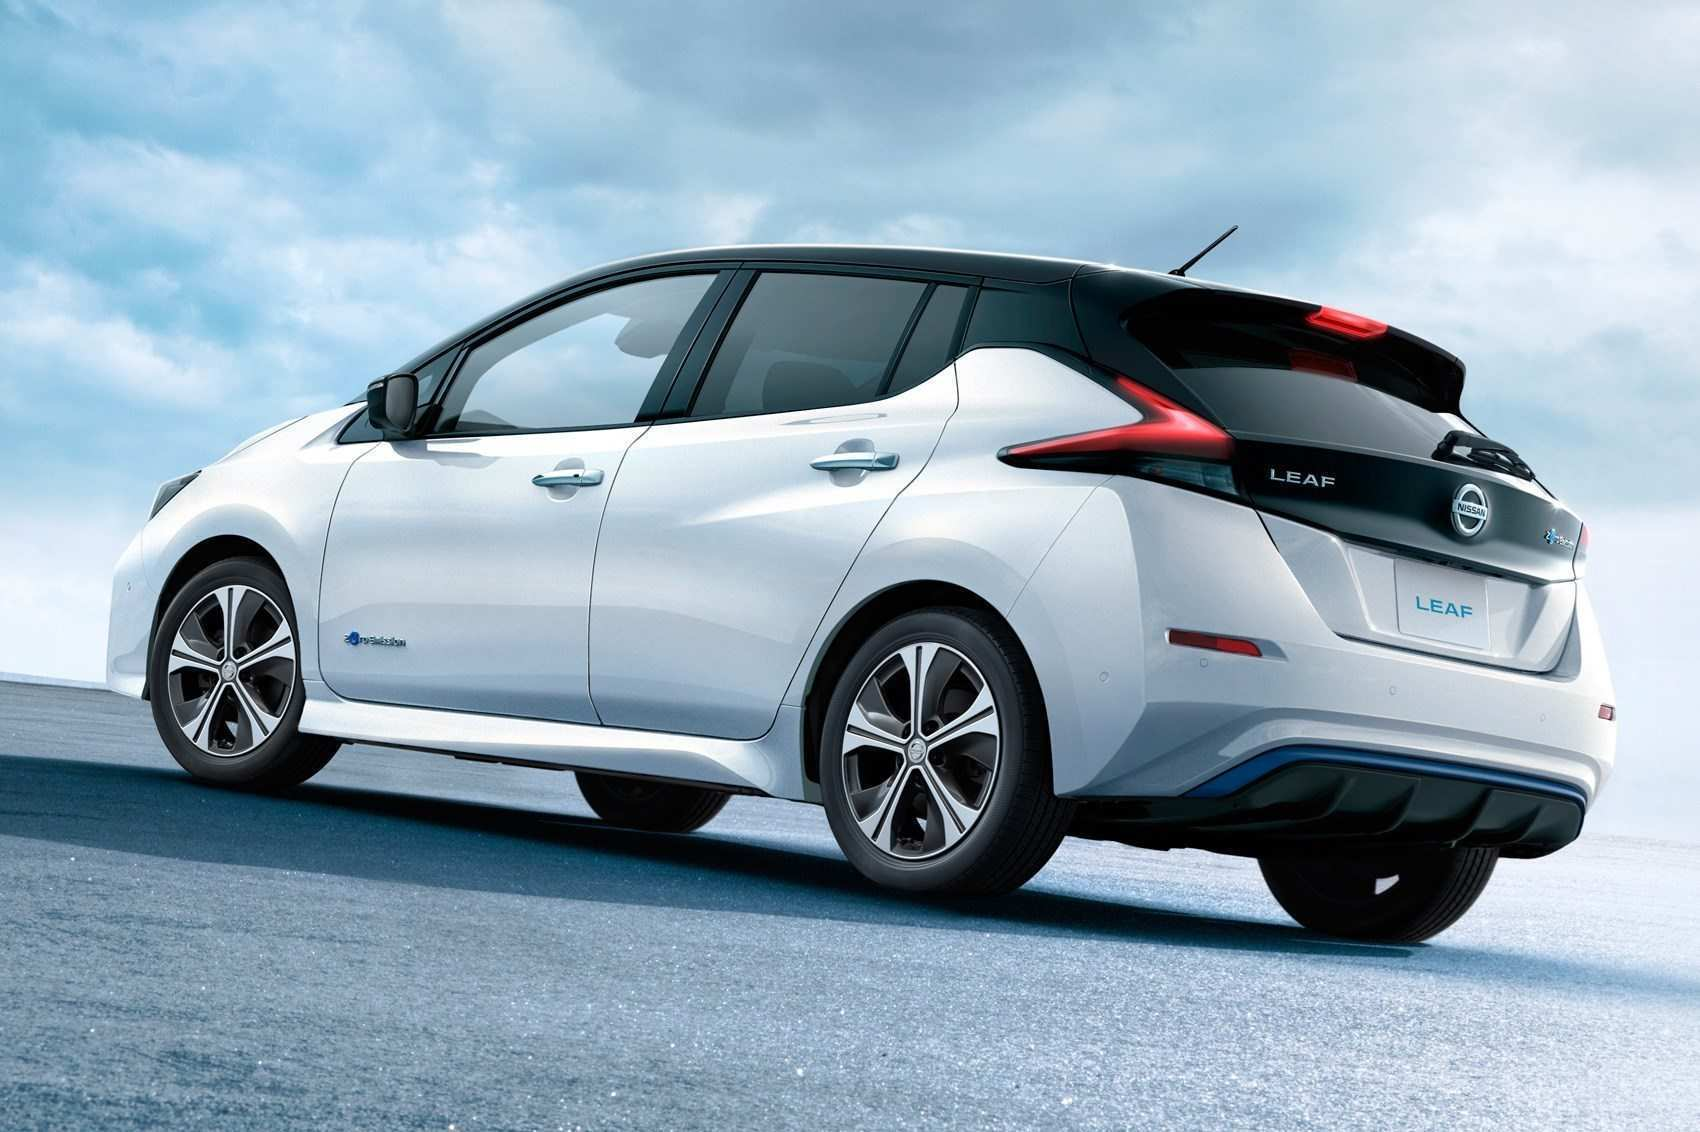 67 New 2020 Nissan Leaf E Plus Release by 2020 Nissan Leaf E Plus